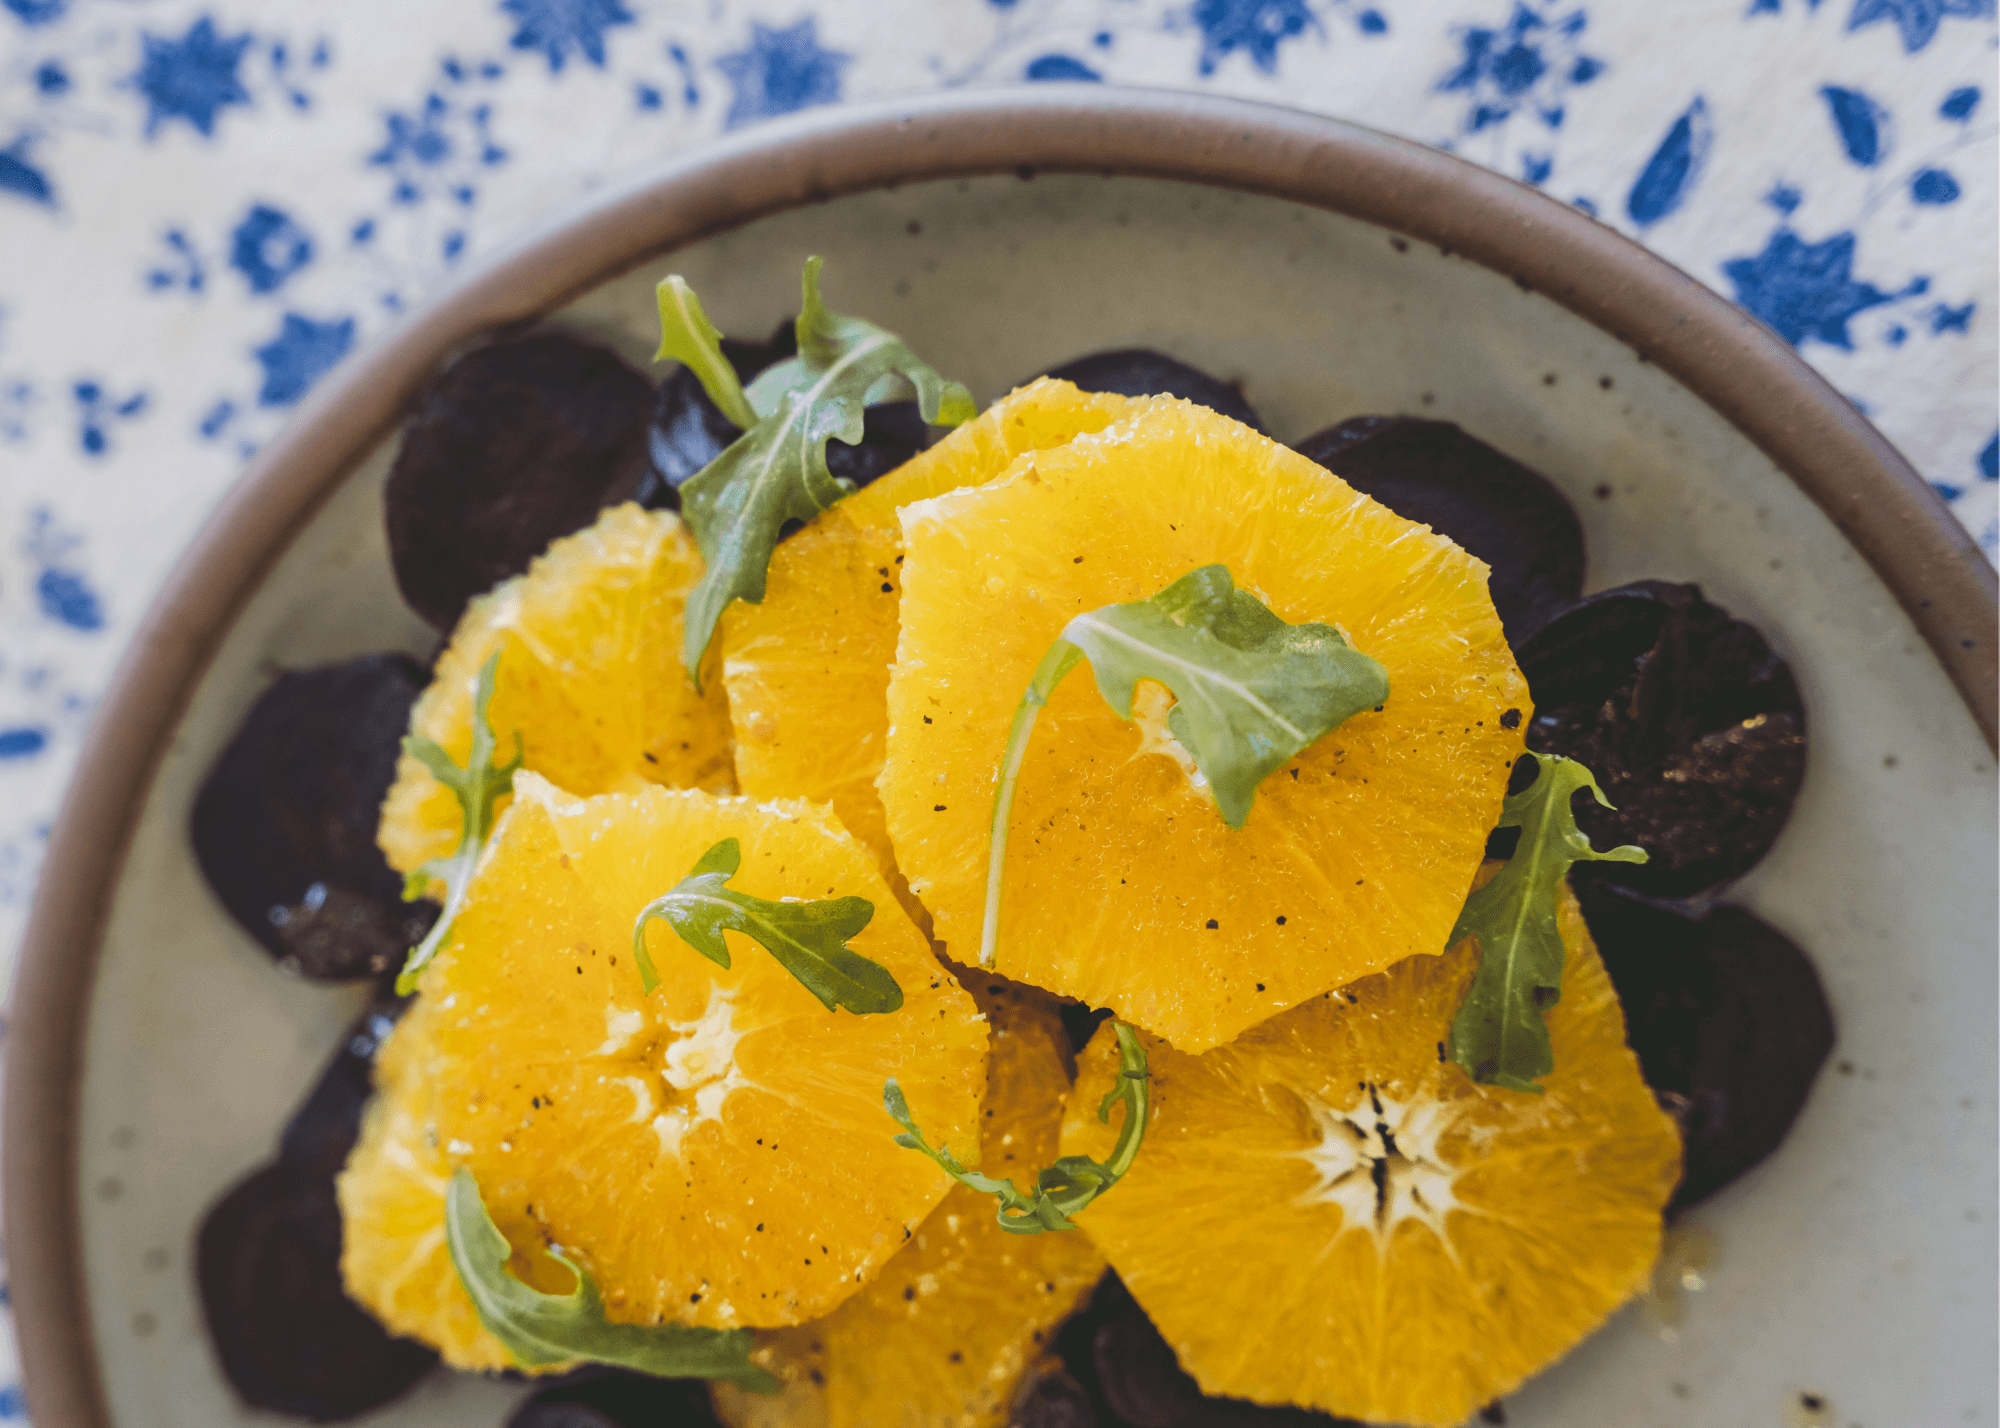 3 Recipes That Use In-Season Oranges That Aren't Dessert